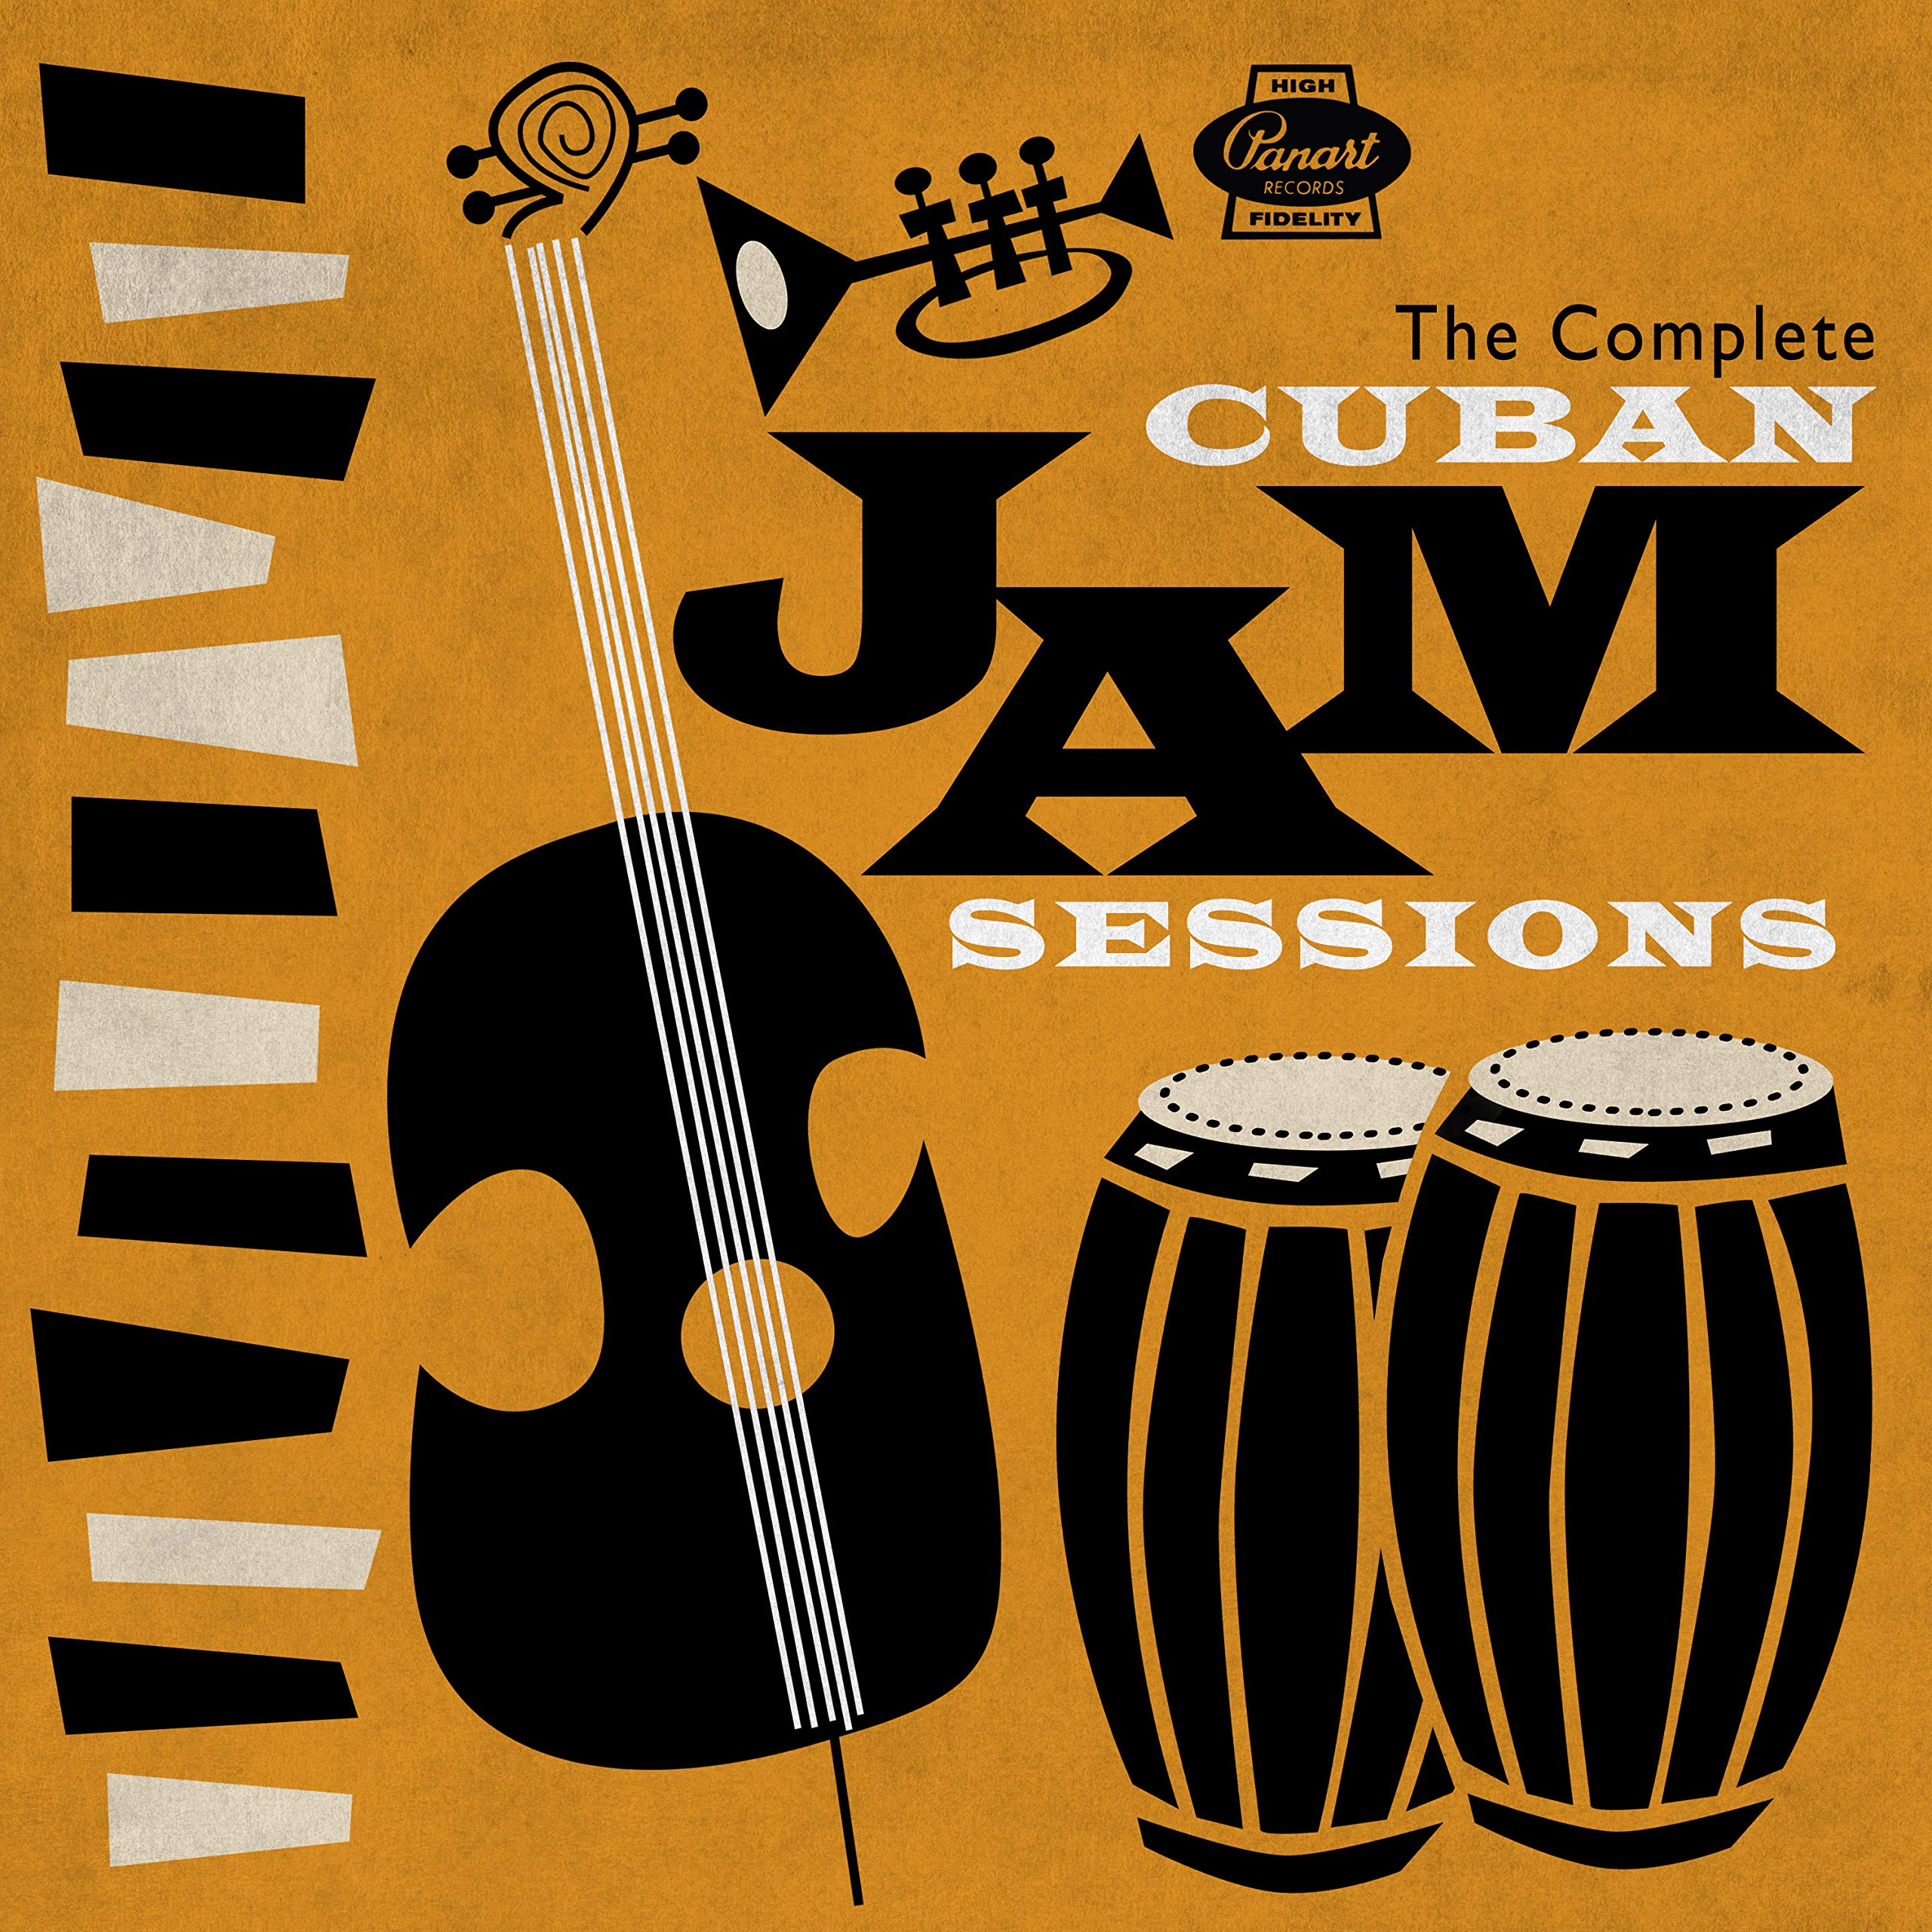 Complete Cuban Jam Sessions [5 CD] by Craft Recordings